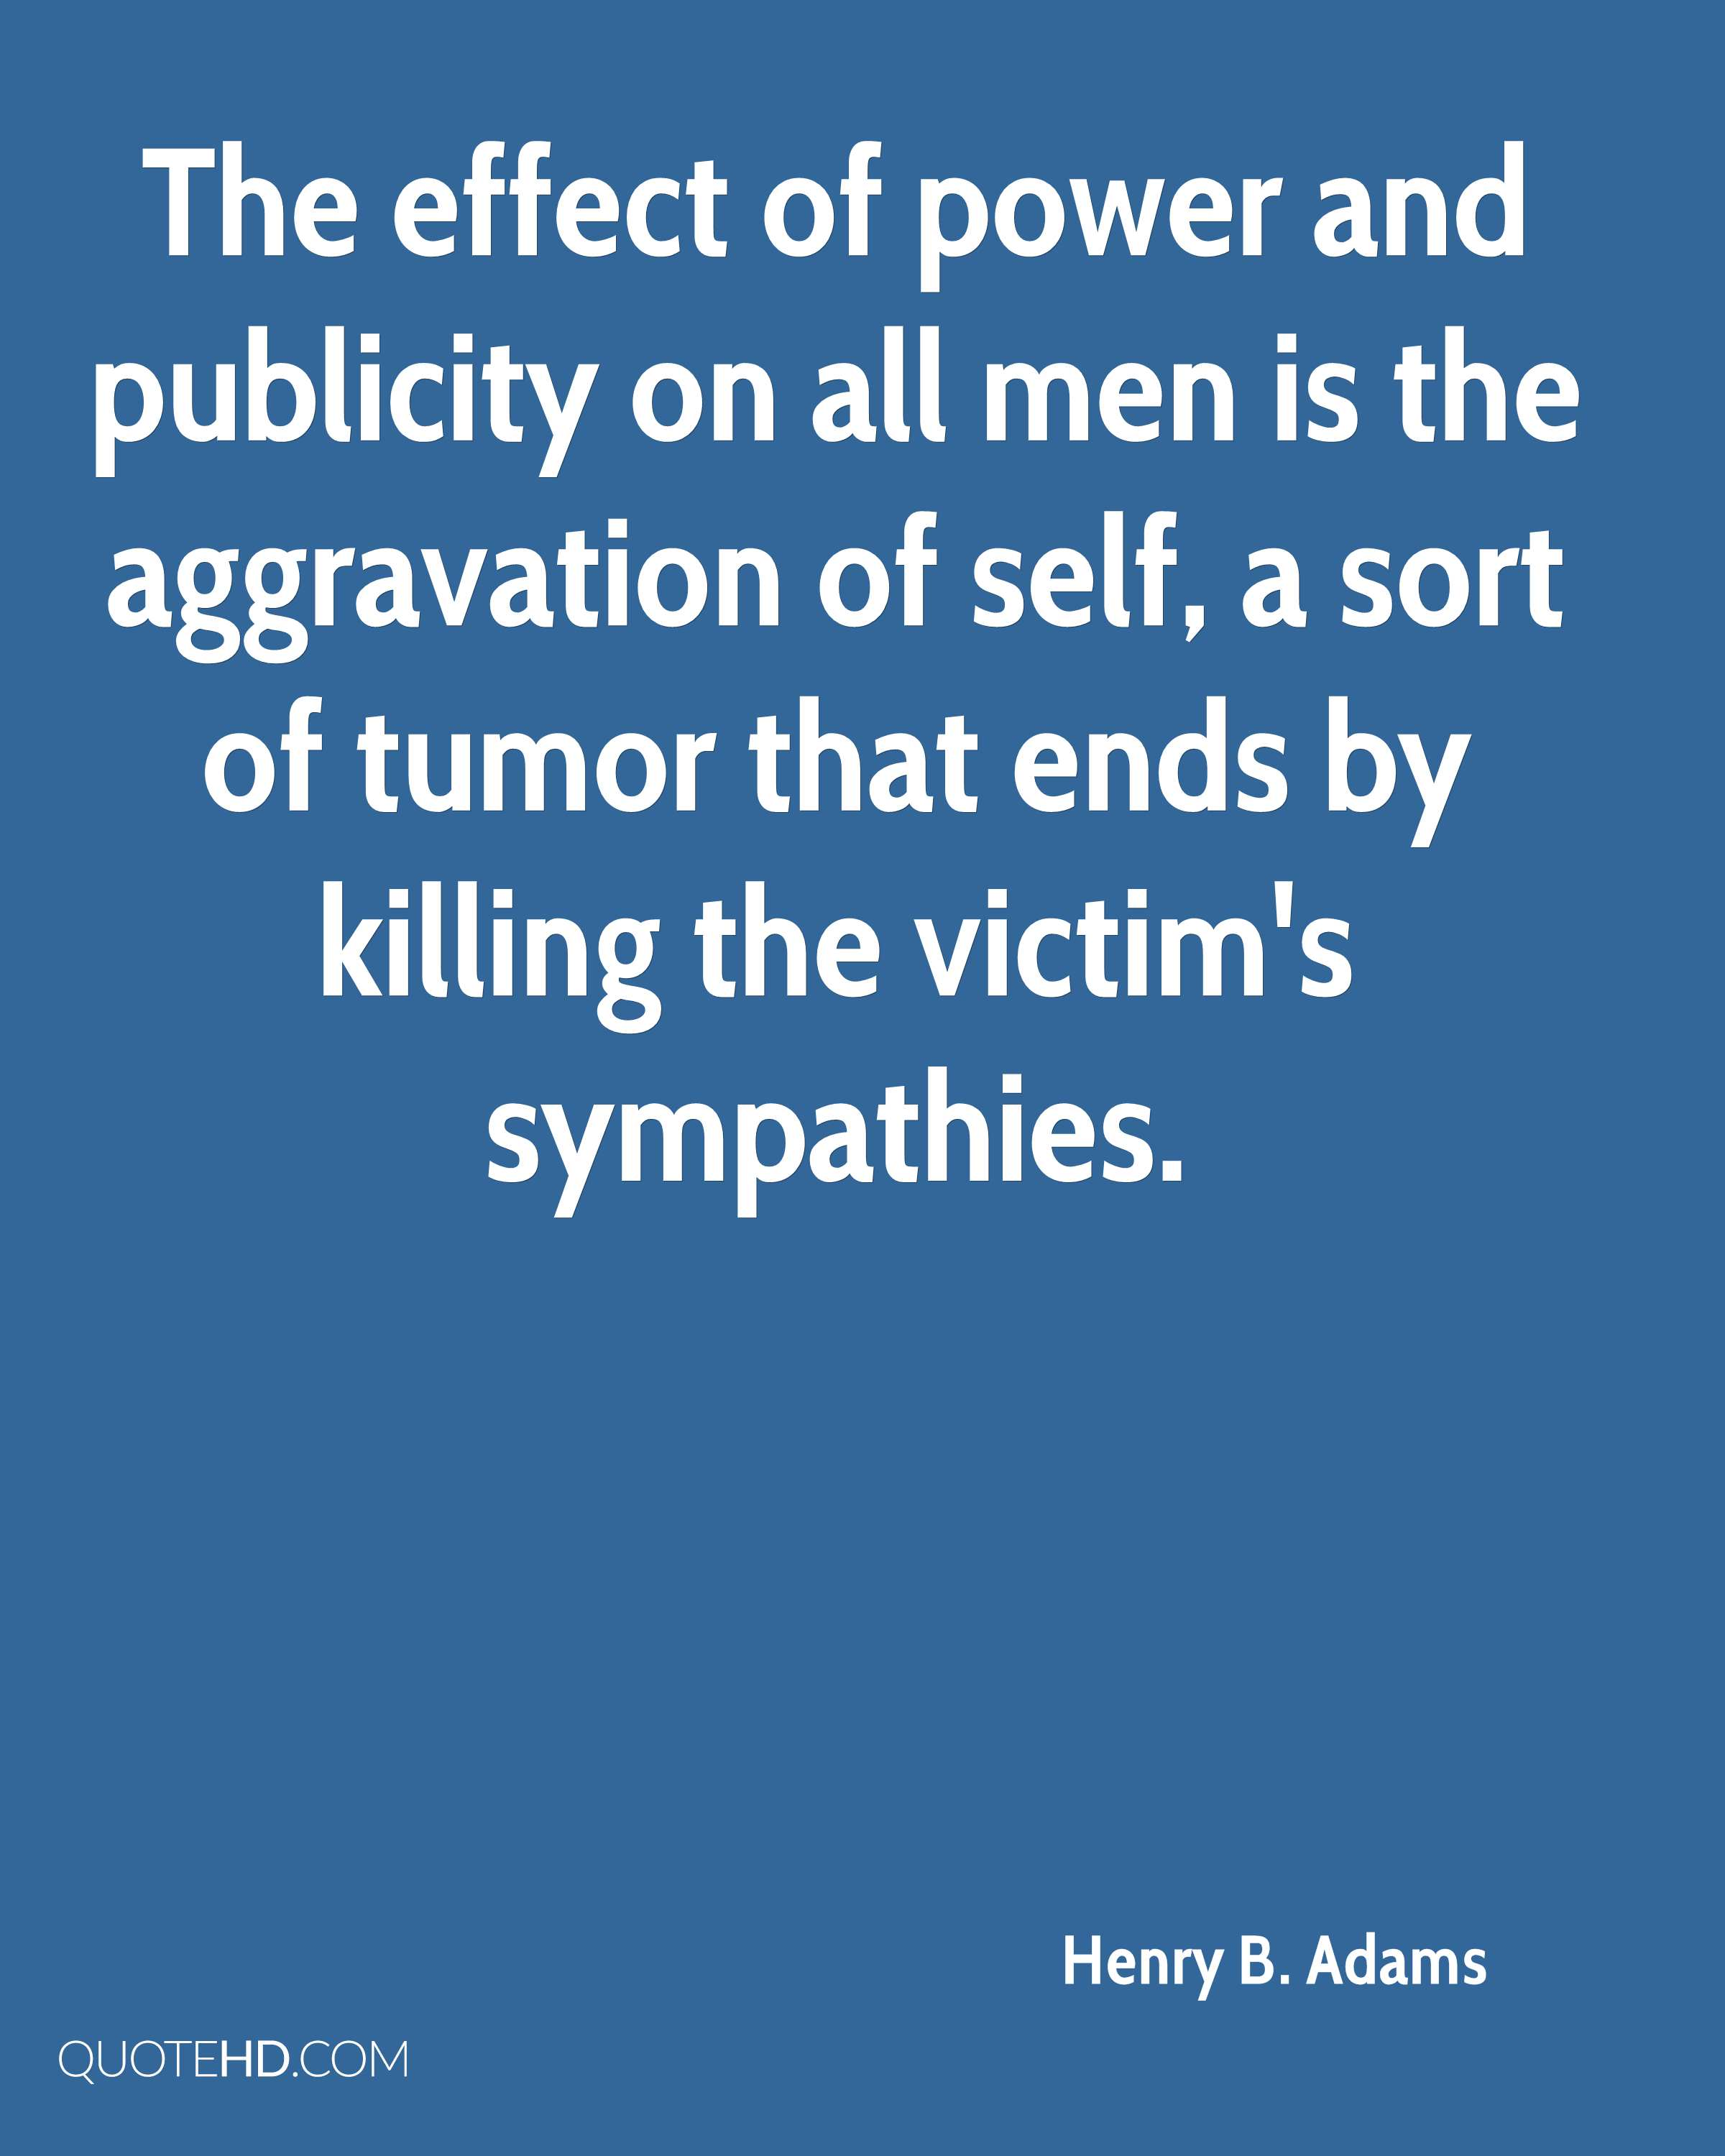 The effect of power and publicity on all men is the aggravation of self, a sort of tumor that ends by killing the victim's sympathies.